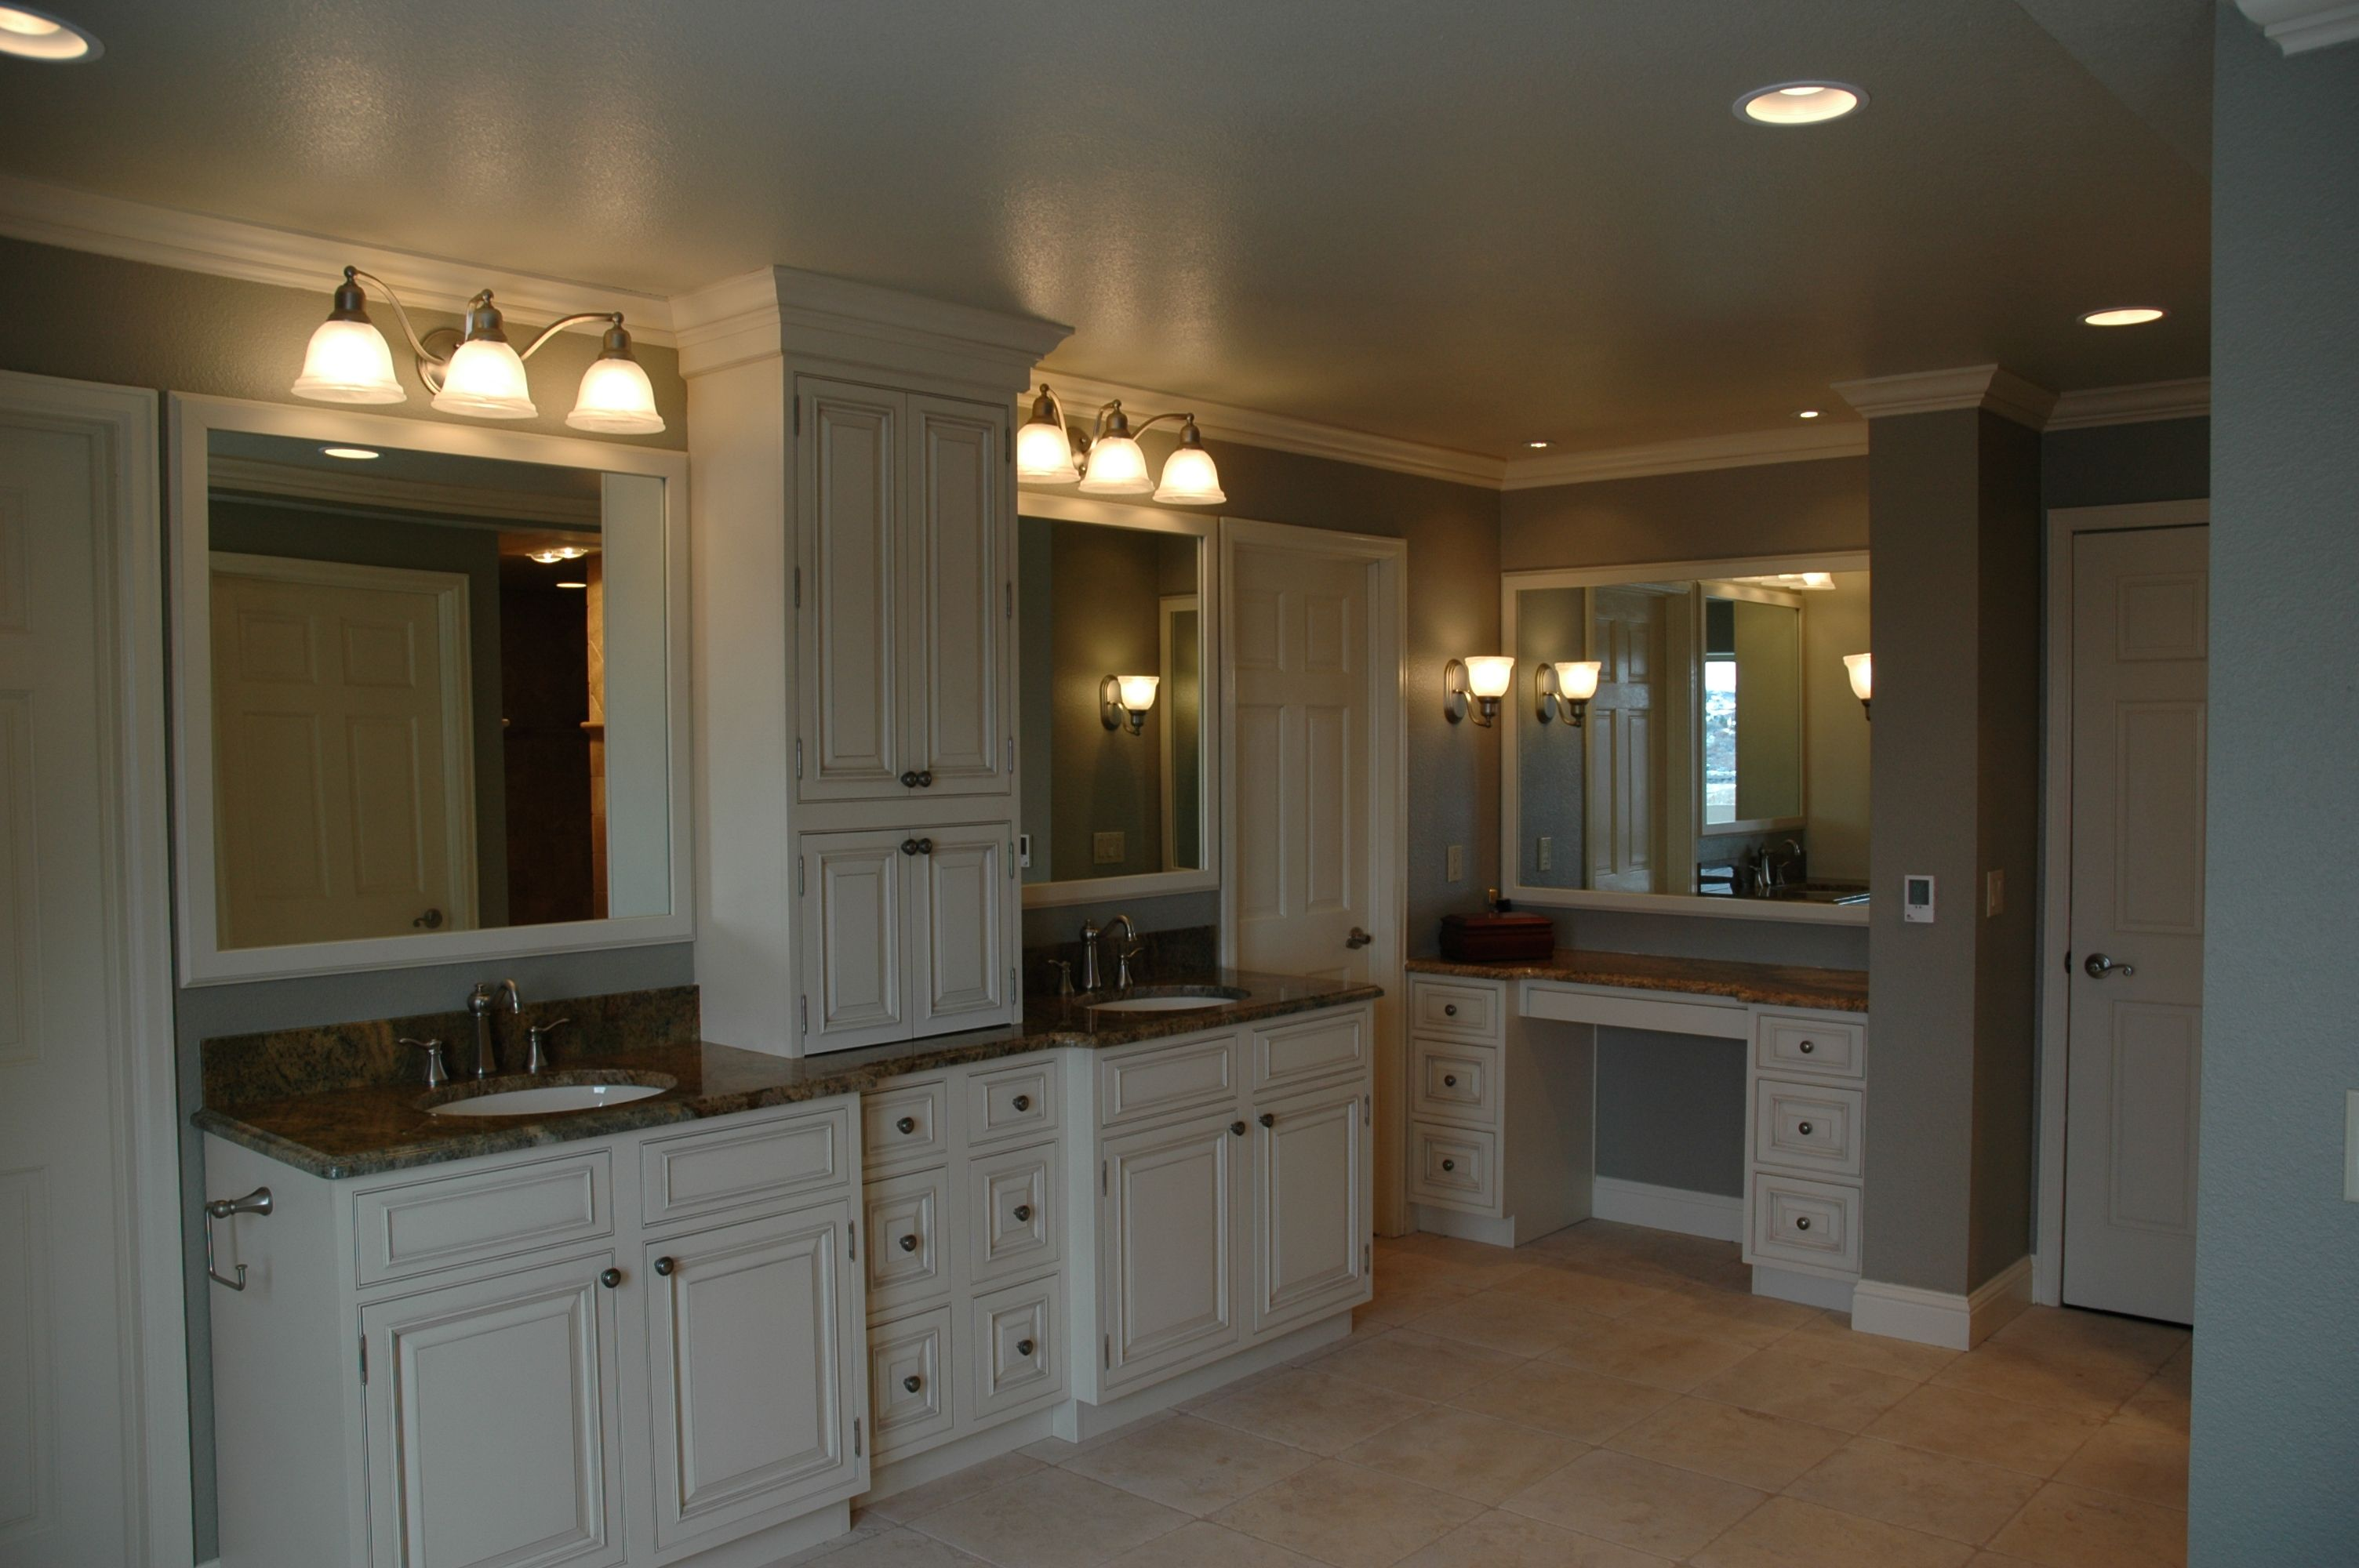 Luxurious double vanity with center tower and a makeup